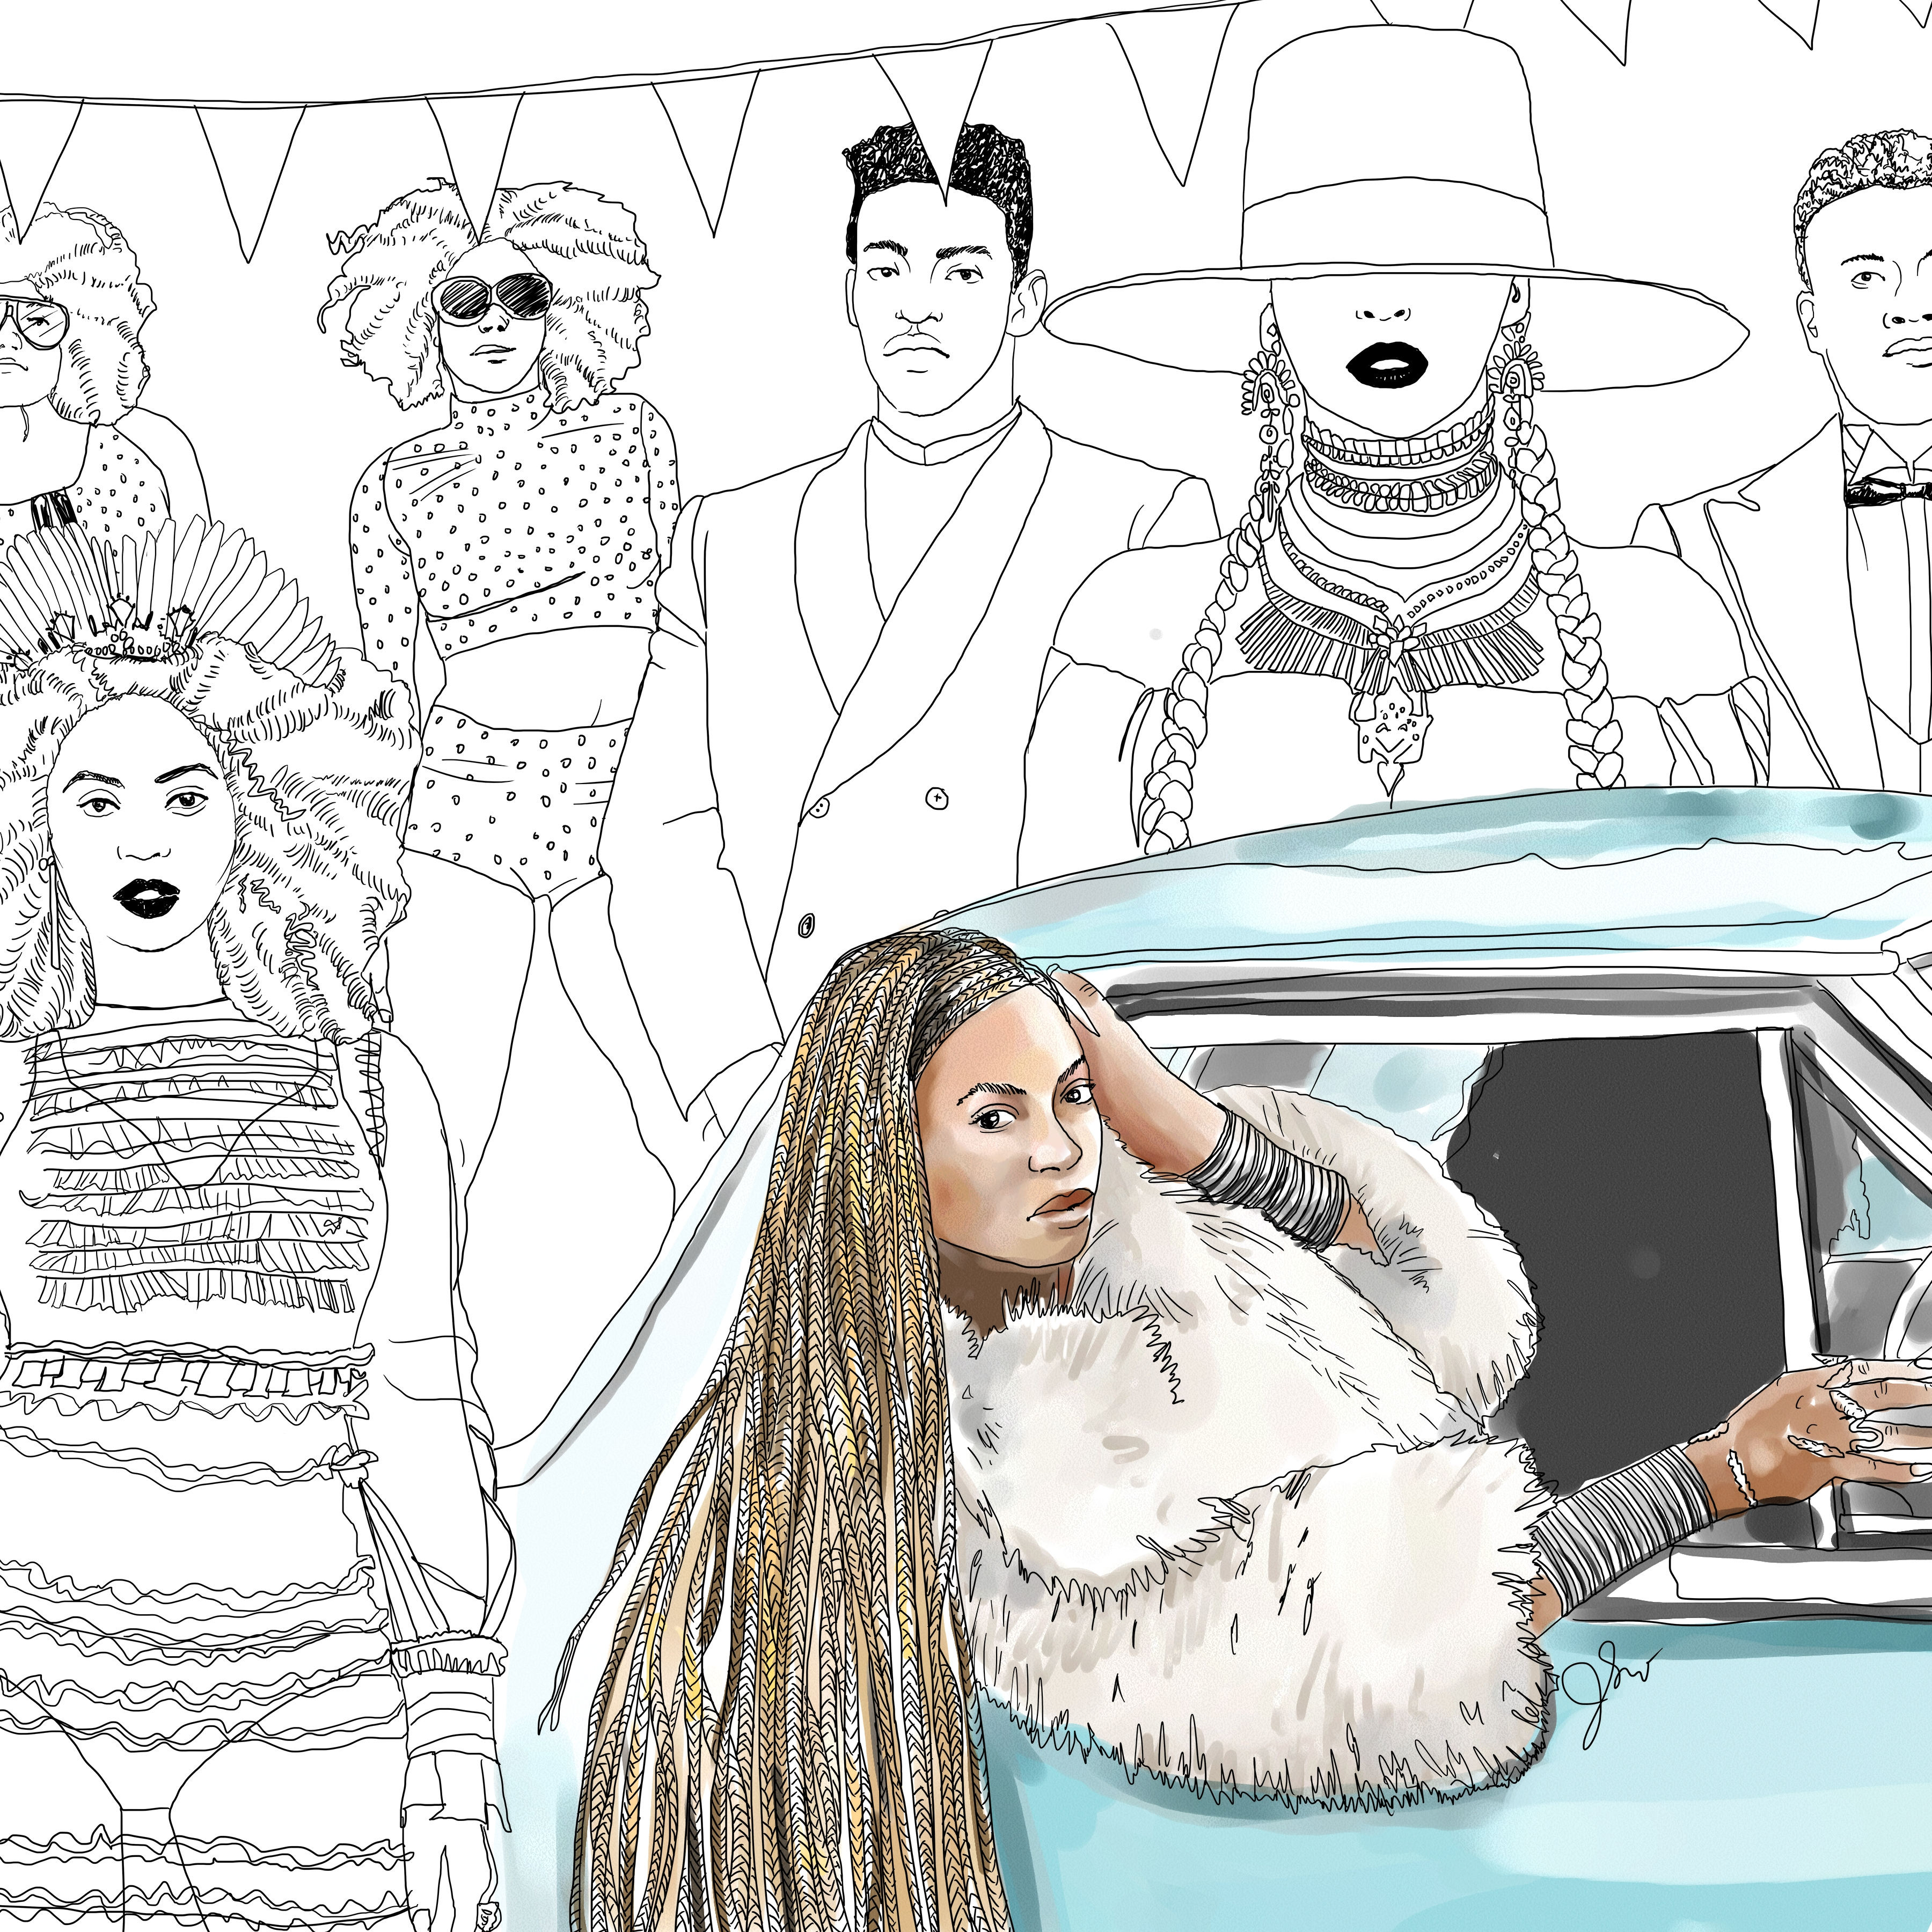 beyonce coloring book thefrancofly rh thefrancofly com Beyonce Lemonade Booklet Beyonce Lemonade Diet